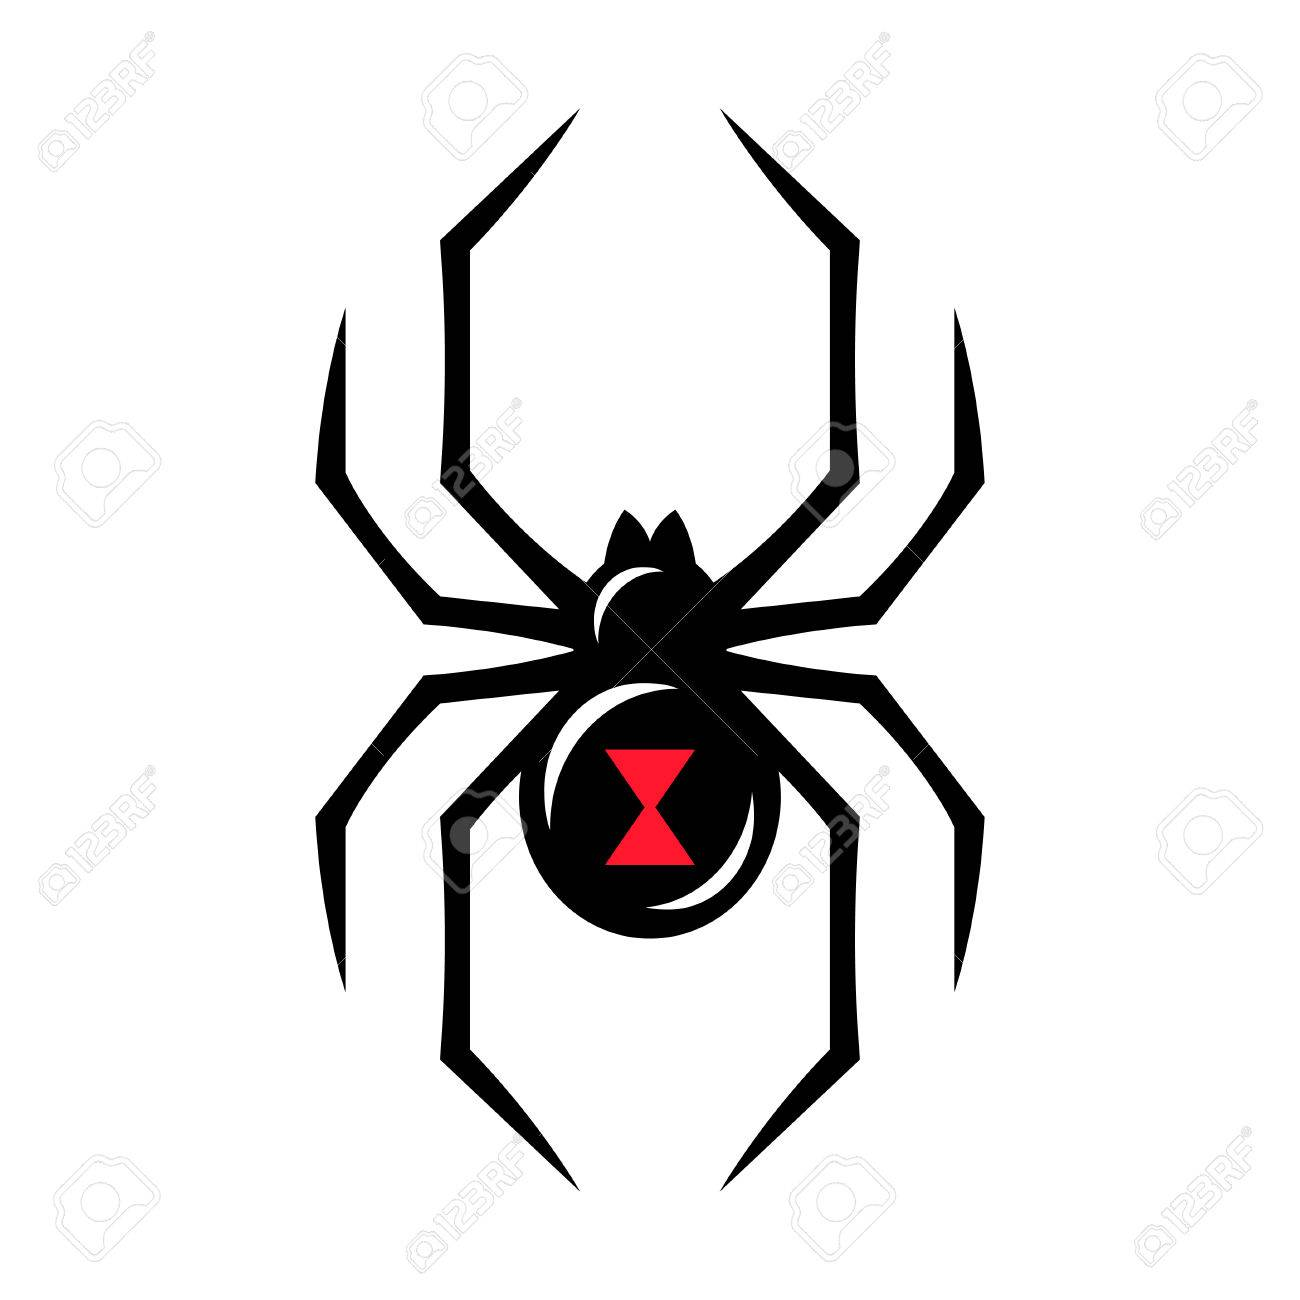 Black widow spider icon isolated on white background. Creepy spider logo  vector illustration. Stock